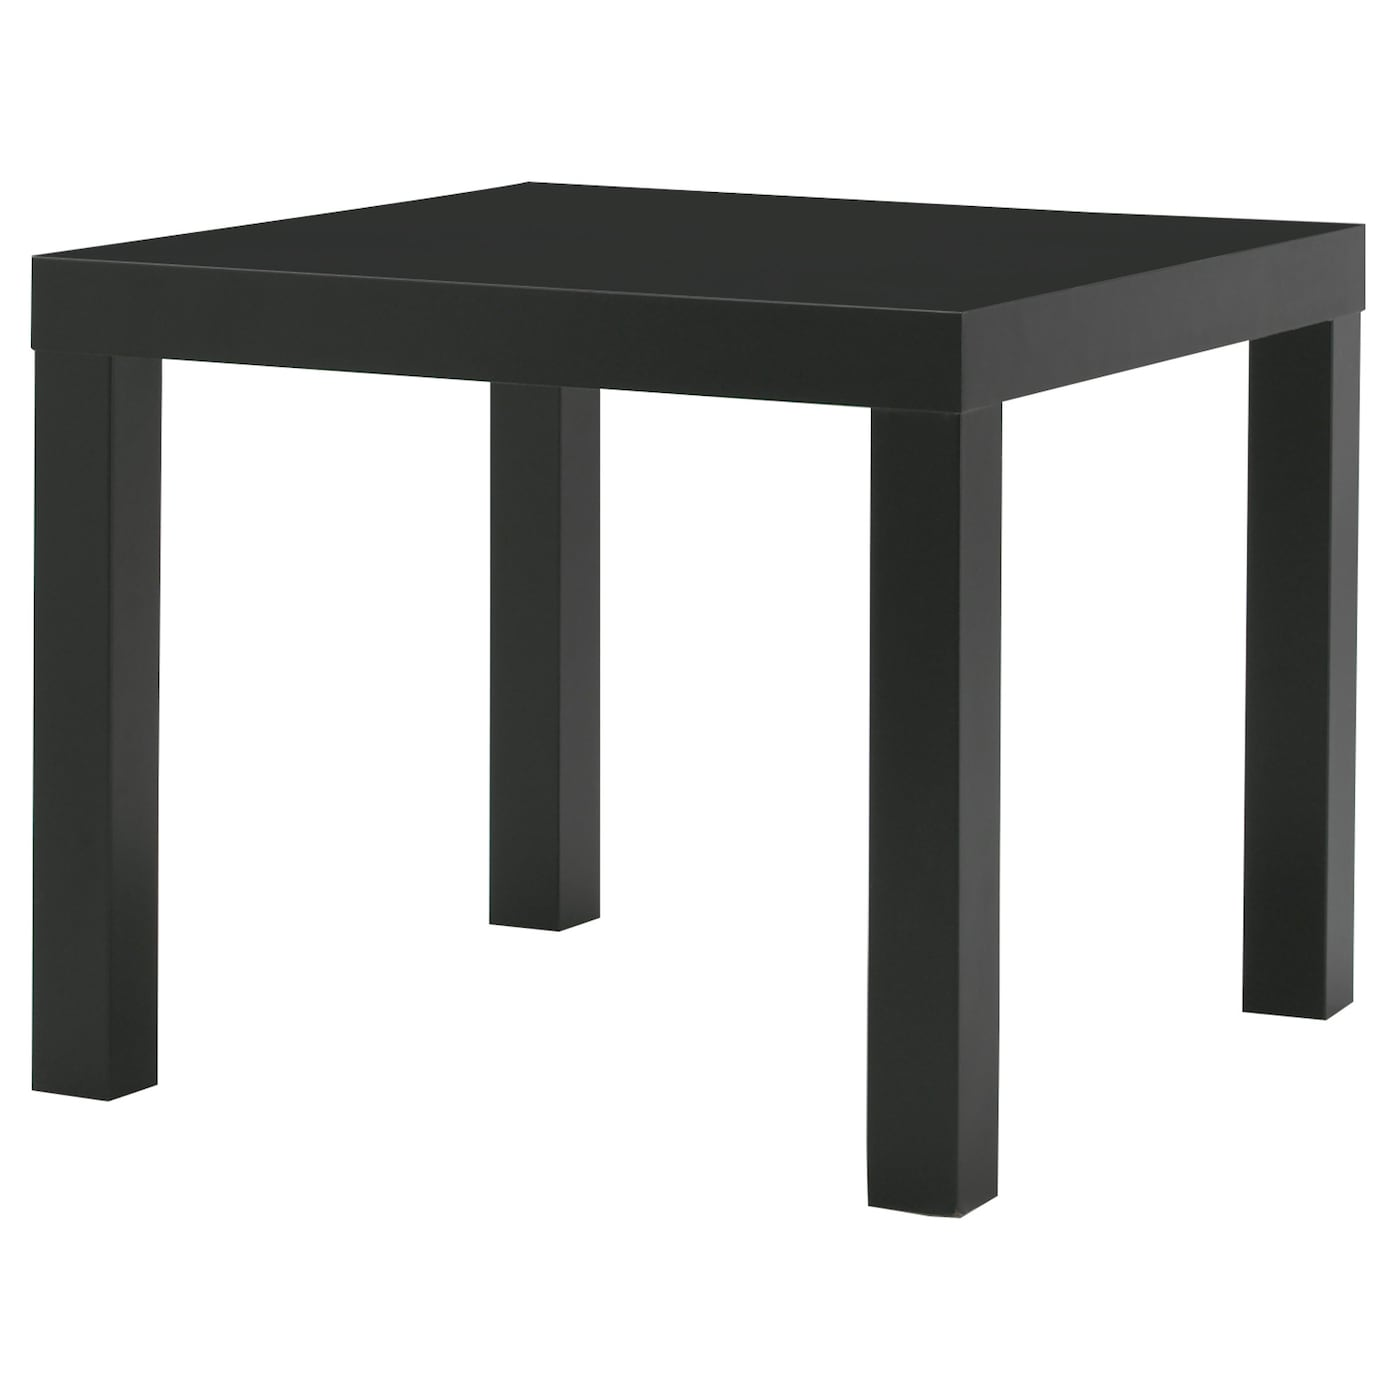 Lack side table black 55x55 cm ikea Ikea coffee tables and end tables